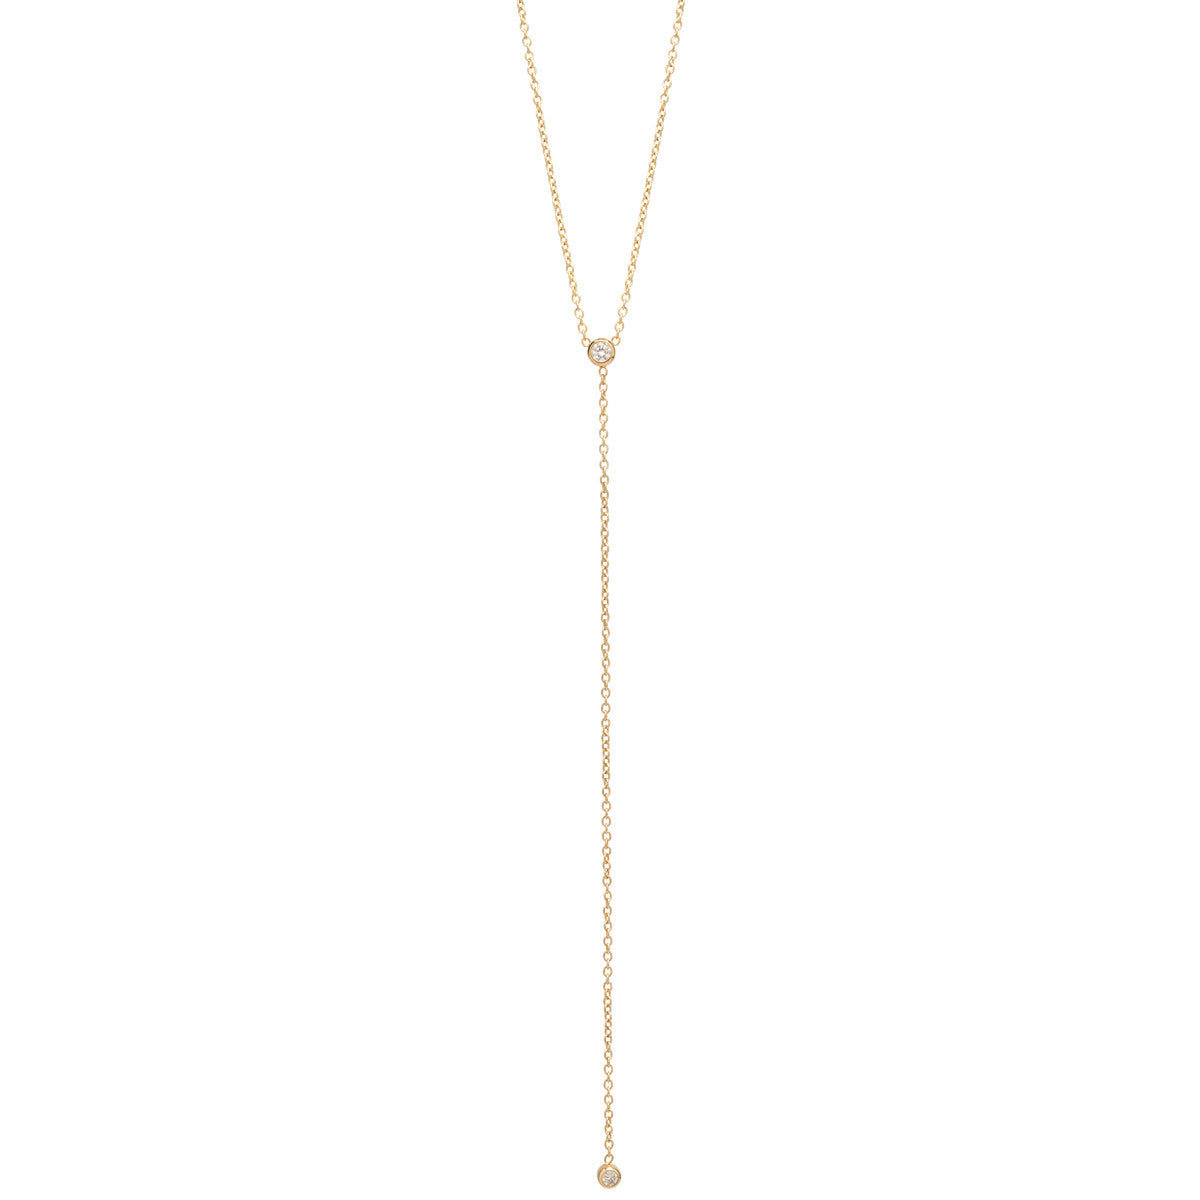 Zoë Chicco 14kt Yellow Gold White Diamond Bezel Set Lariat Necklace